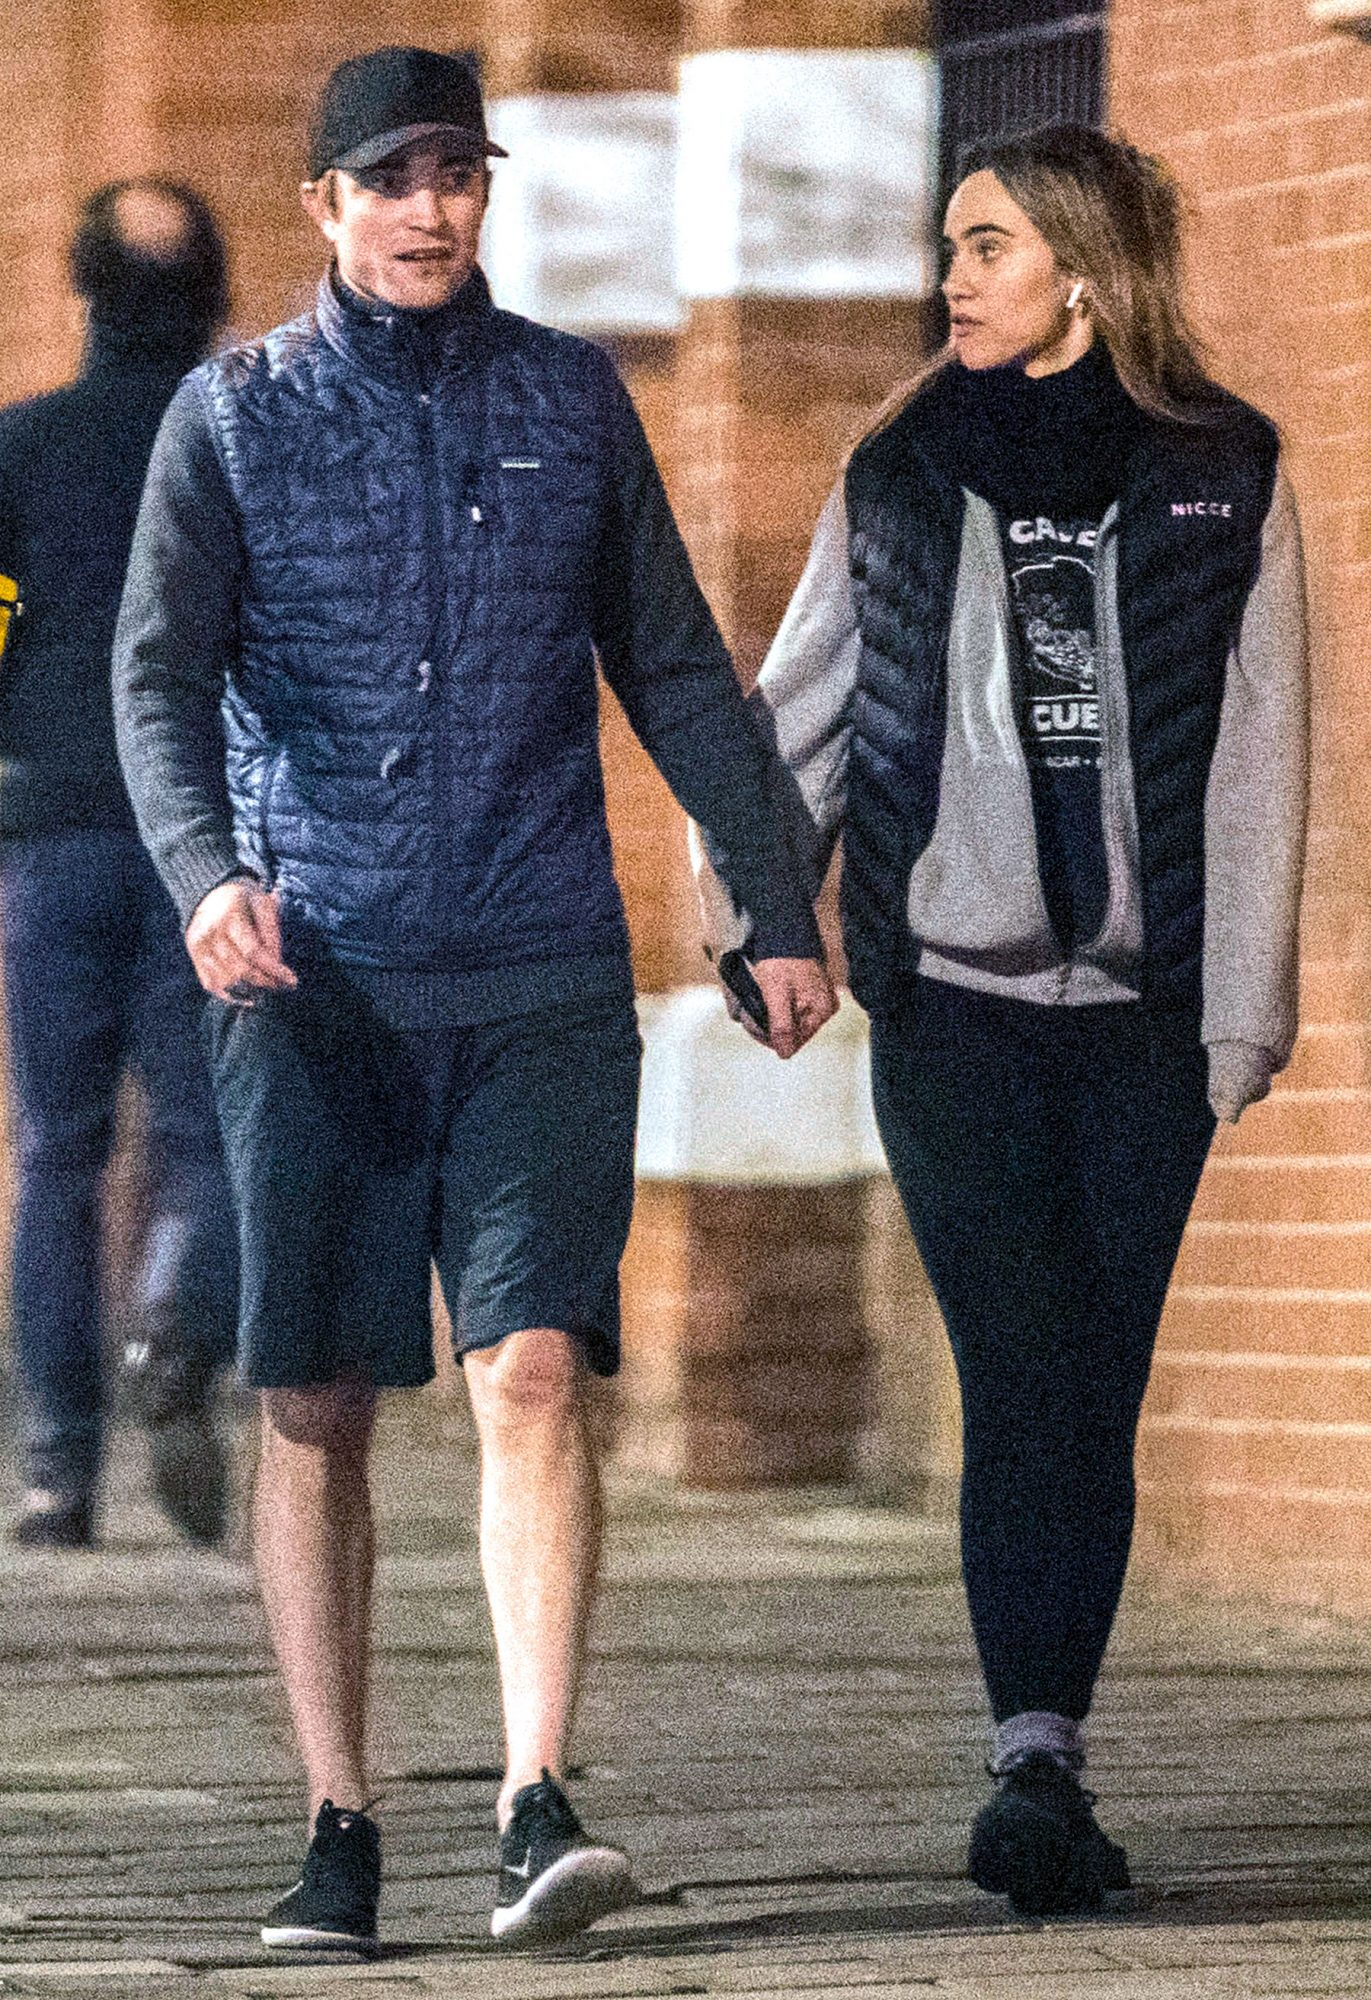 EXCLUSIVE: Robert Pattinson and Suki Waterhouse are Spotted Going for Run in London.